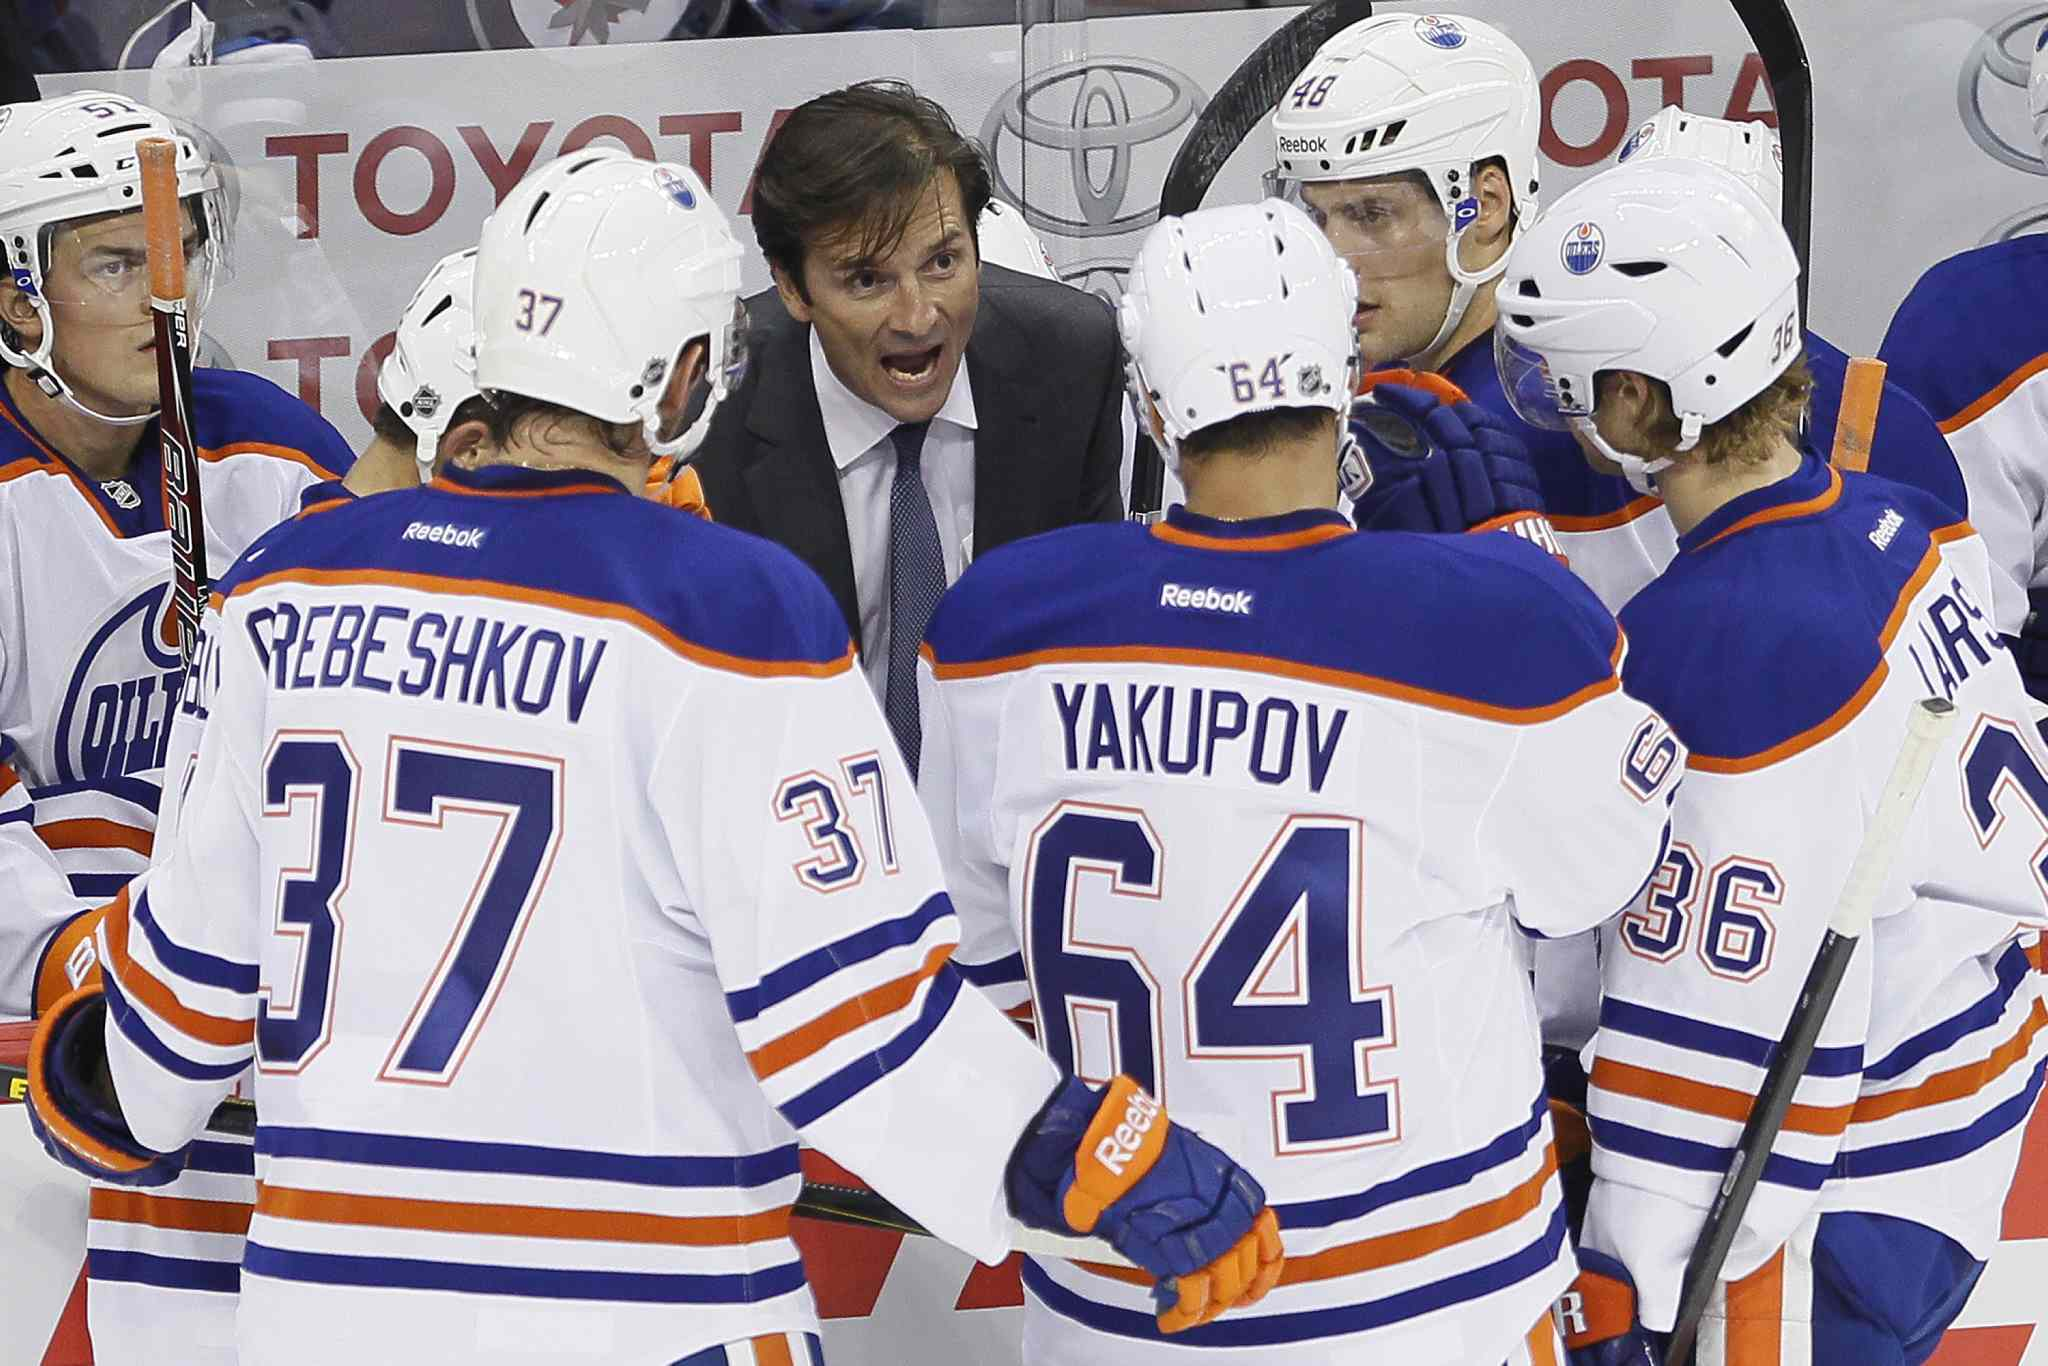 Head coach Dallas Eakins instructs his Oilers during the first period Tuesday evening. He rejects the 'young team' perspective, with the Cup being the goal this season.